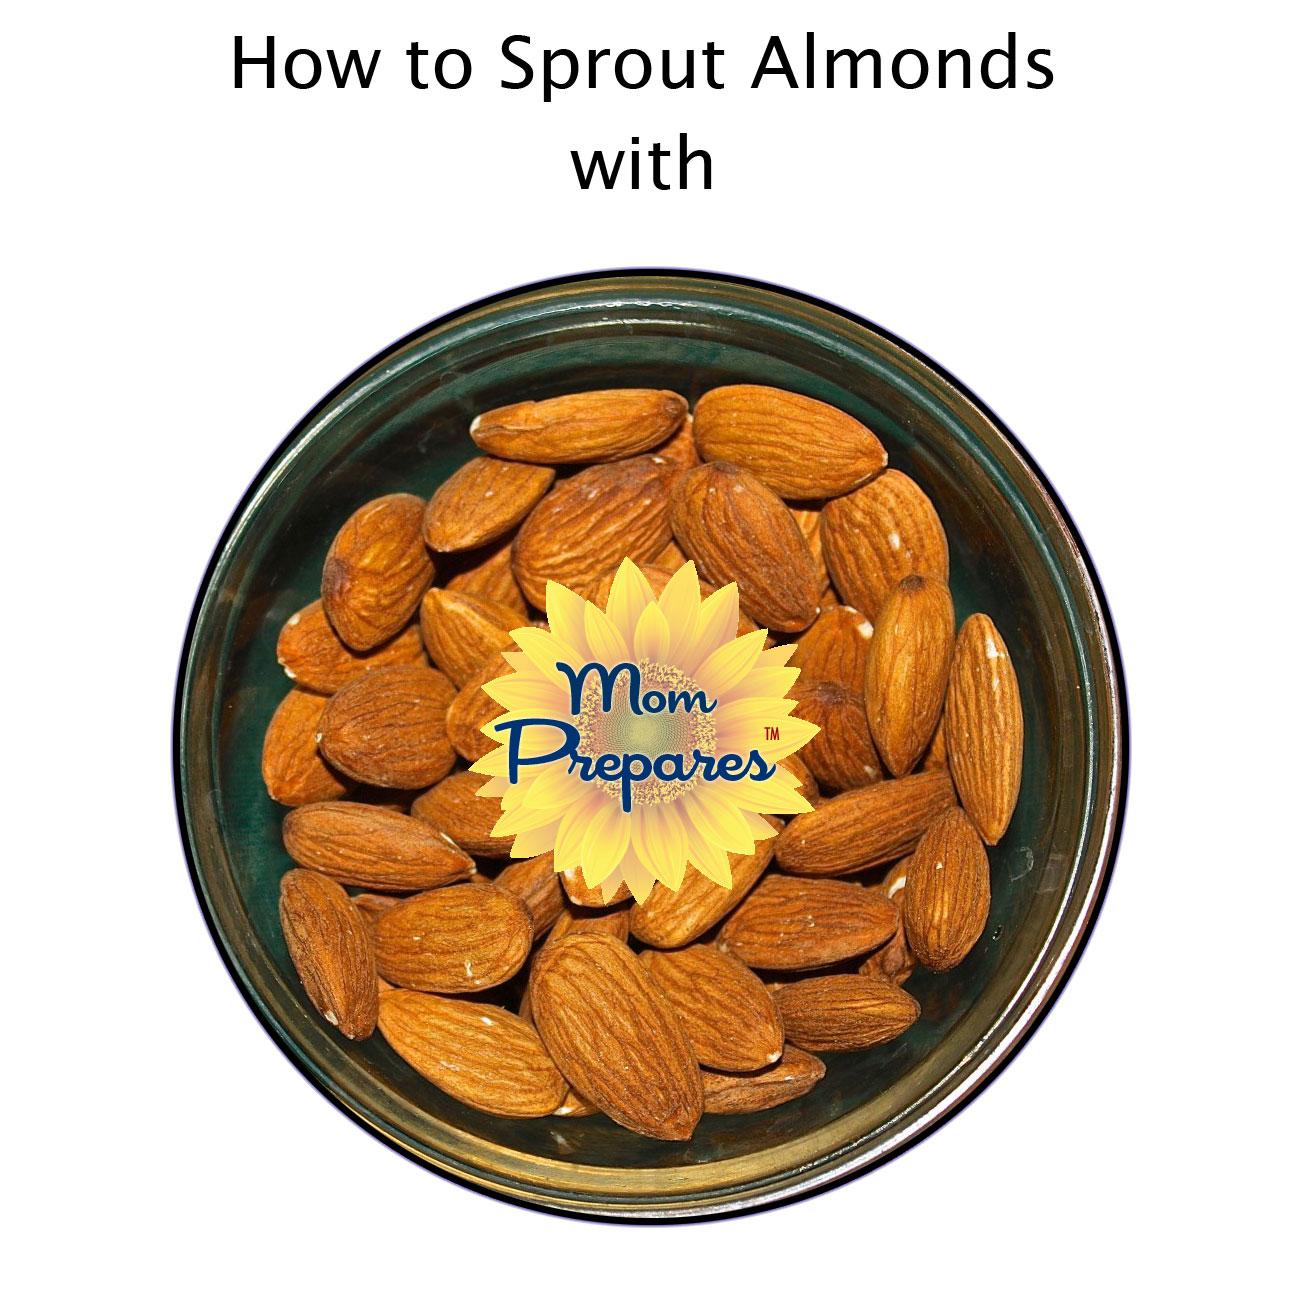 Sprouting Almonds: Pasteurized Nuts Won